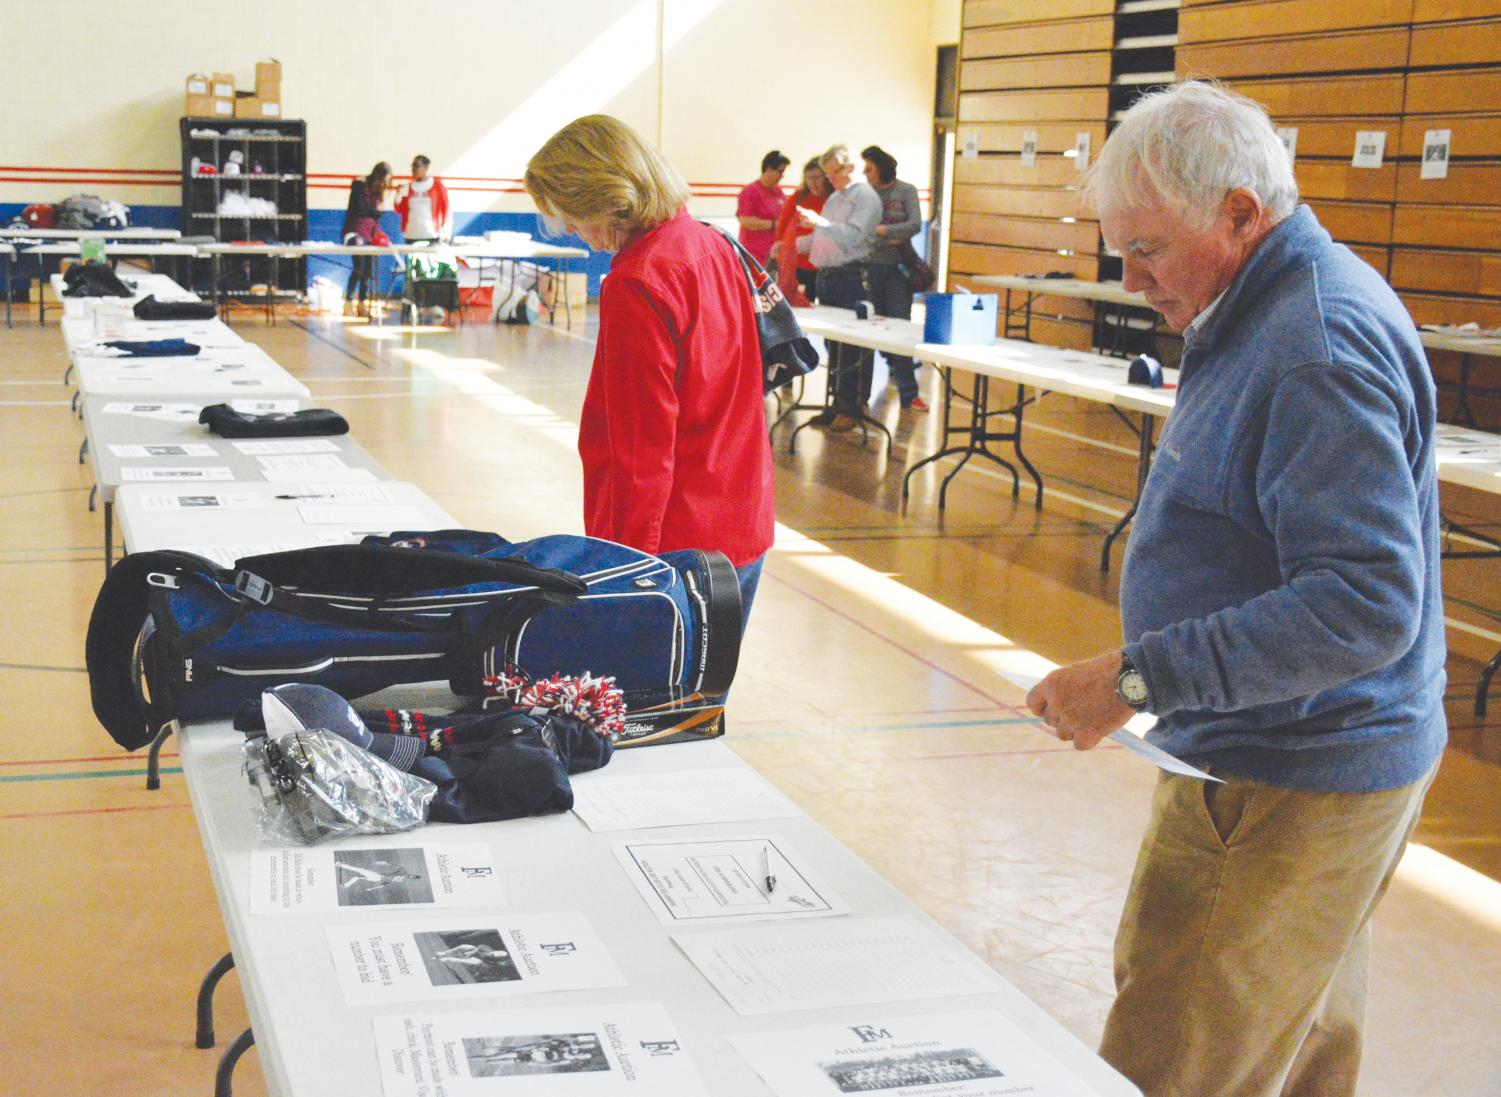 Members of the FMU community look through the items up for auction during the 2018 Homecoming Silent Auction. Proceeds from the auction go to the FMU Athletics Department.